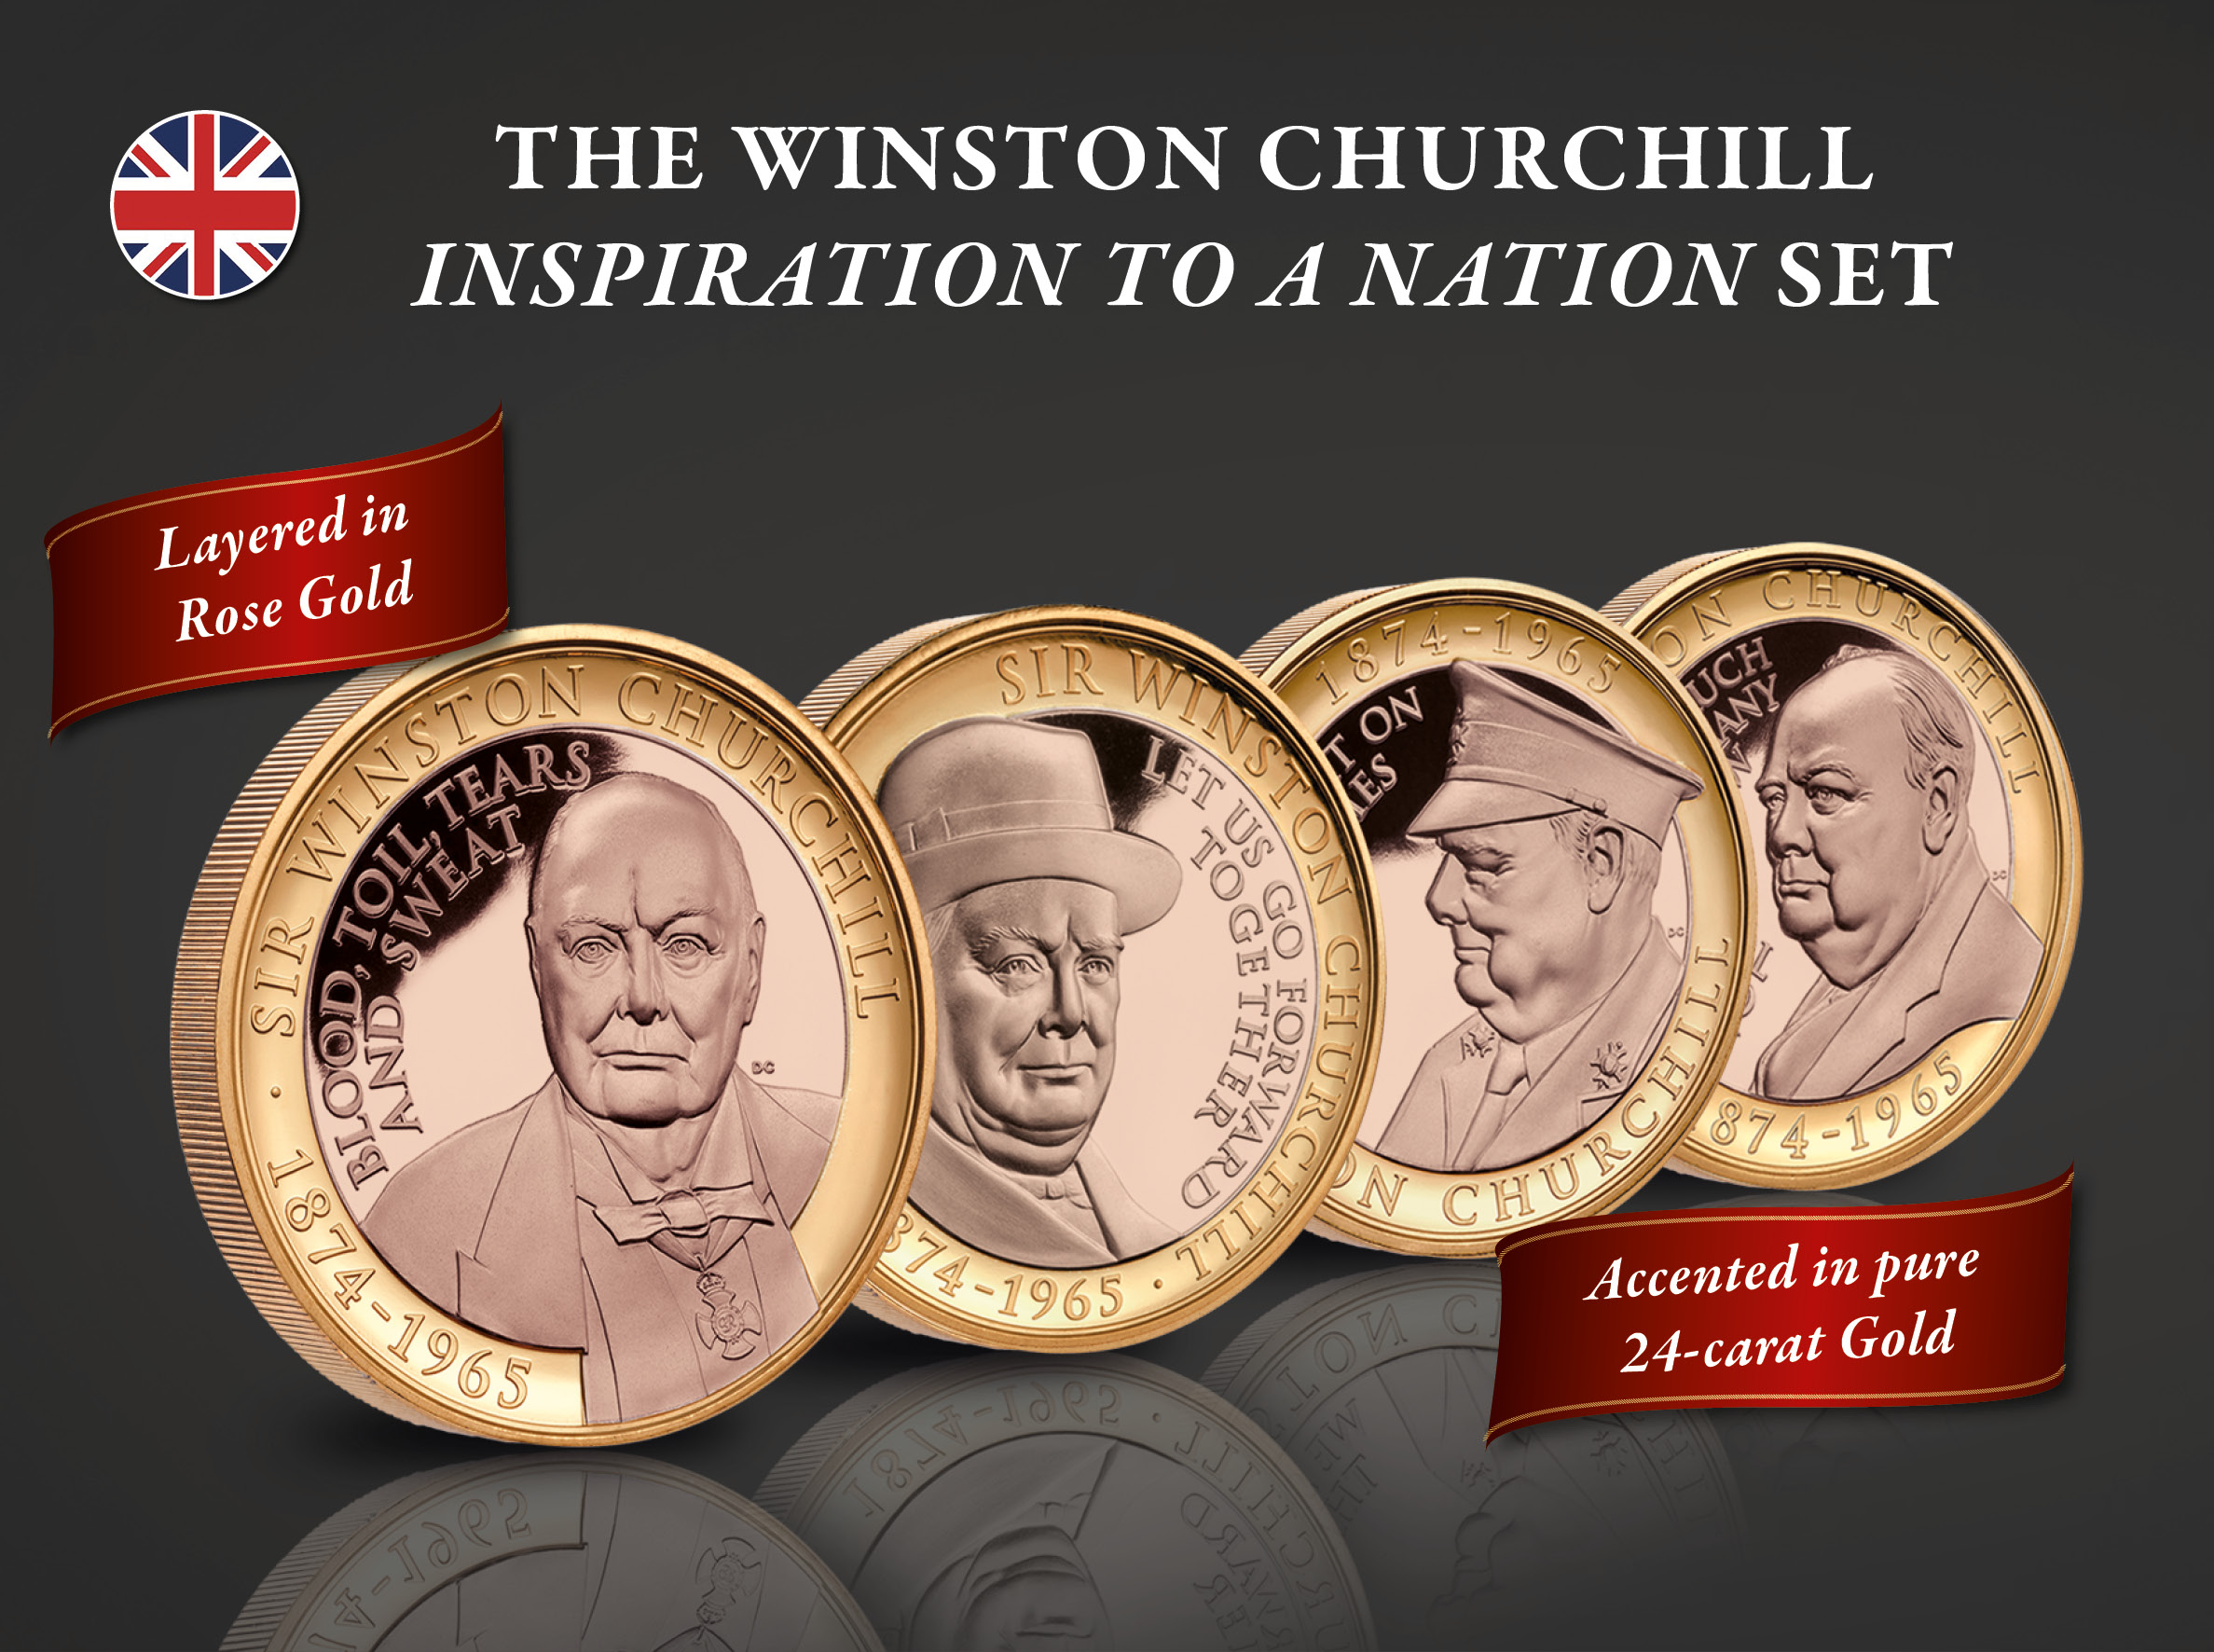 Winston Churchill Inspiration to a Nation Set